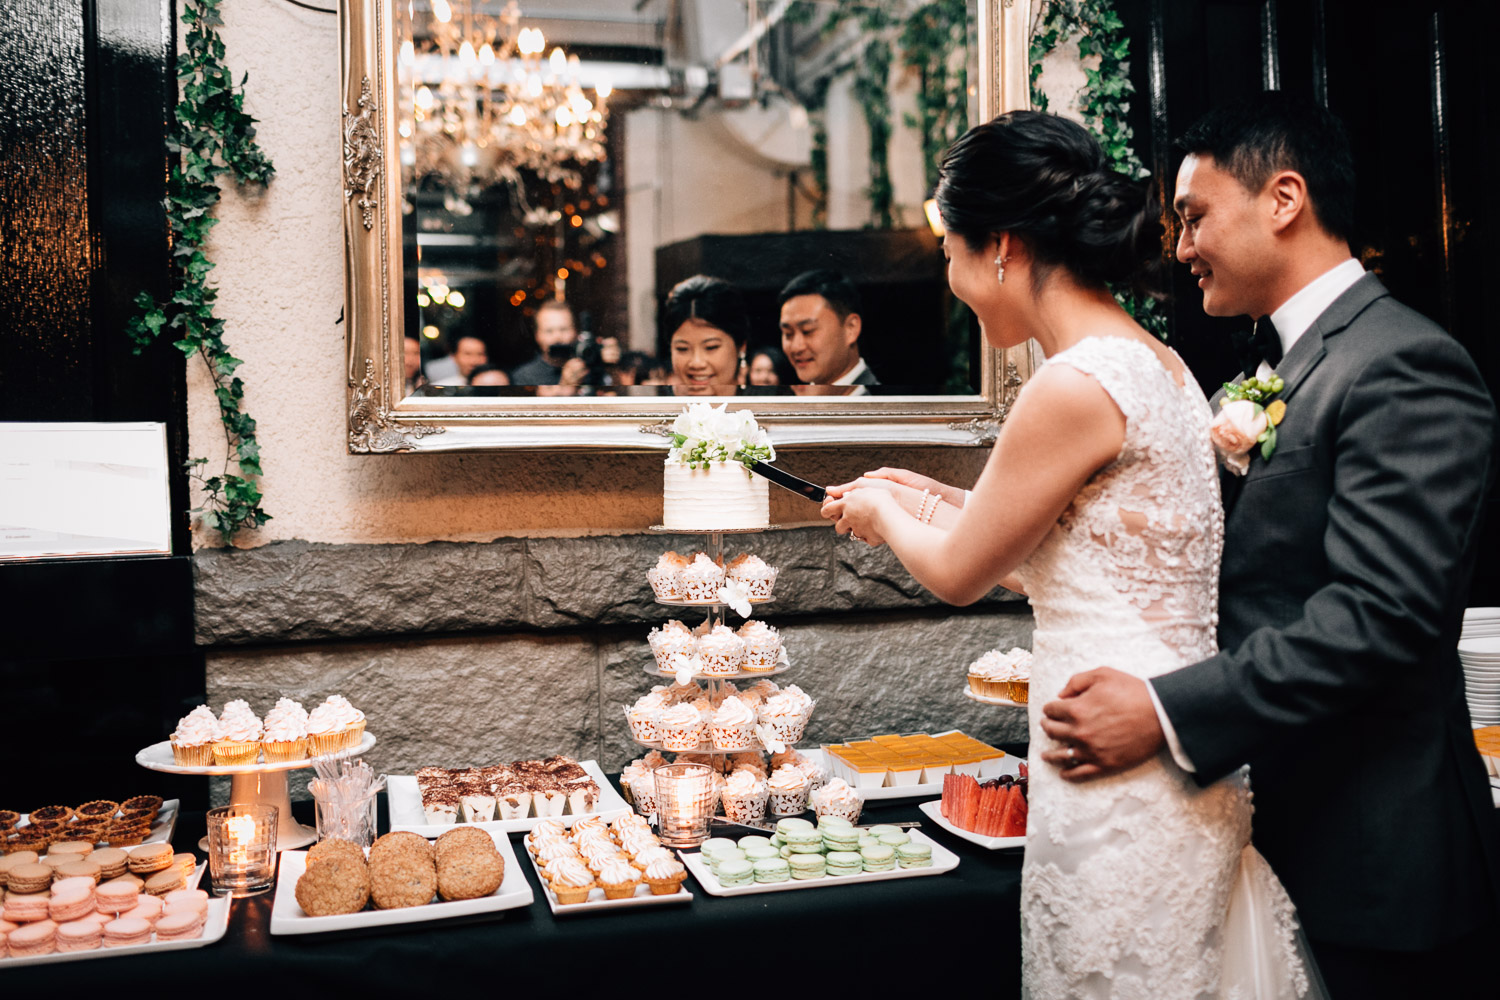 cake cutting and brix and mortar wedding reception vancouver bc